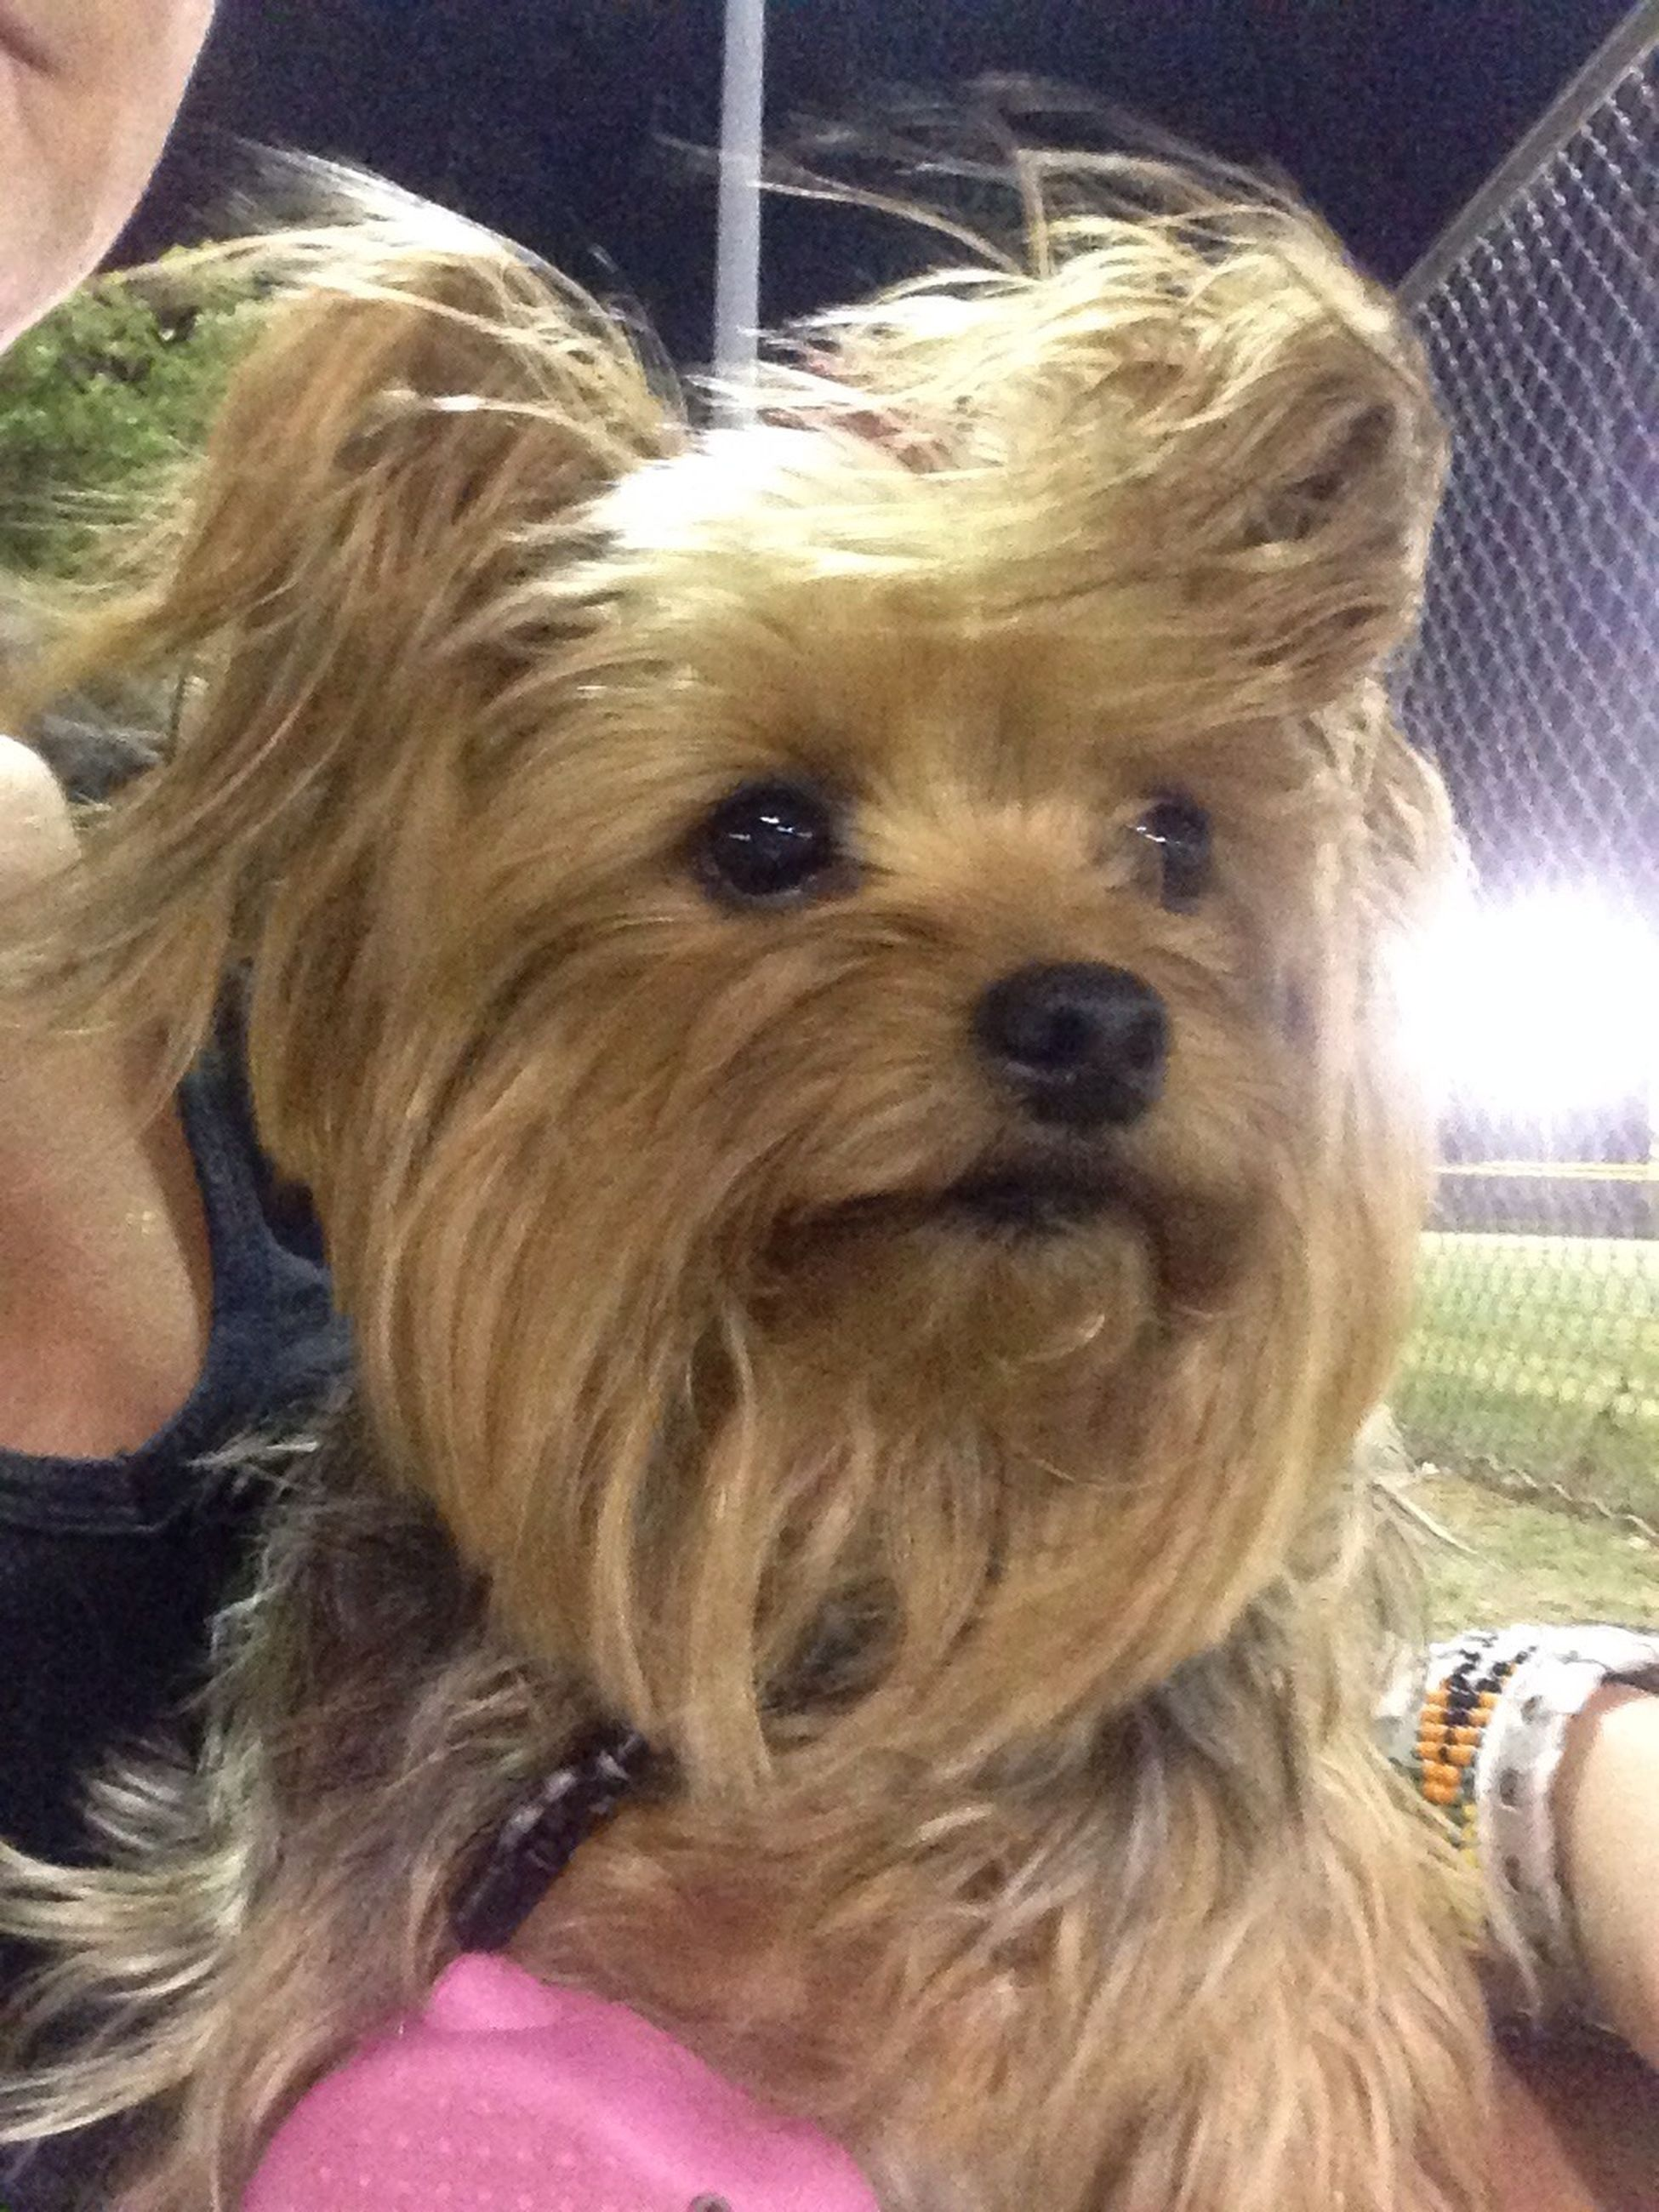 My little Yorkie Miley! Love her to pieces! My Dog Watching Softball